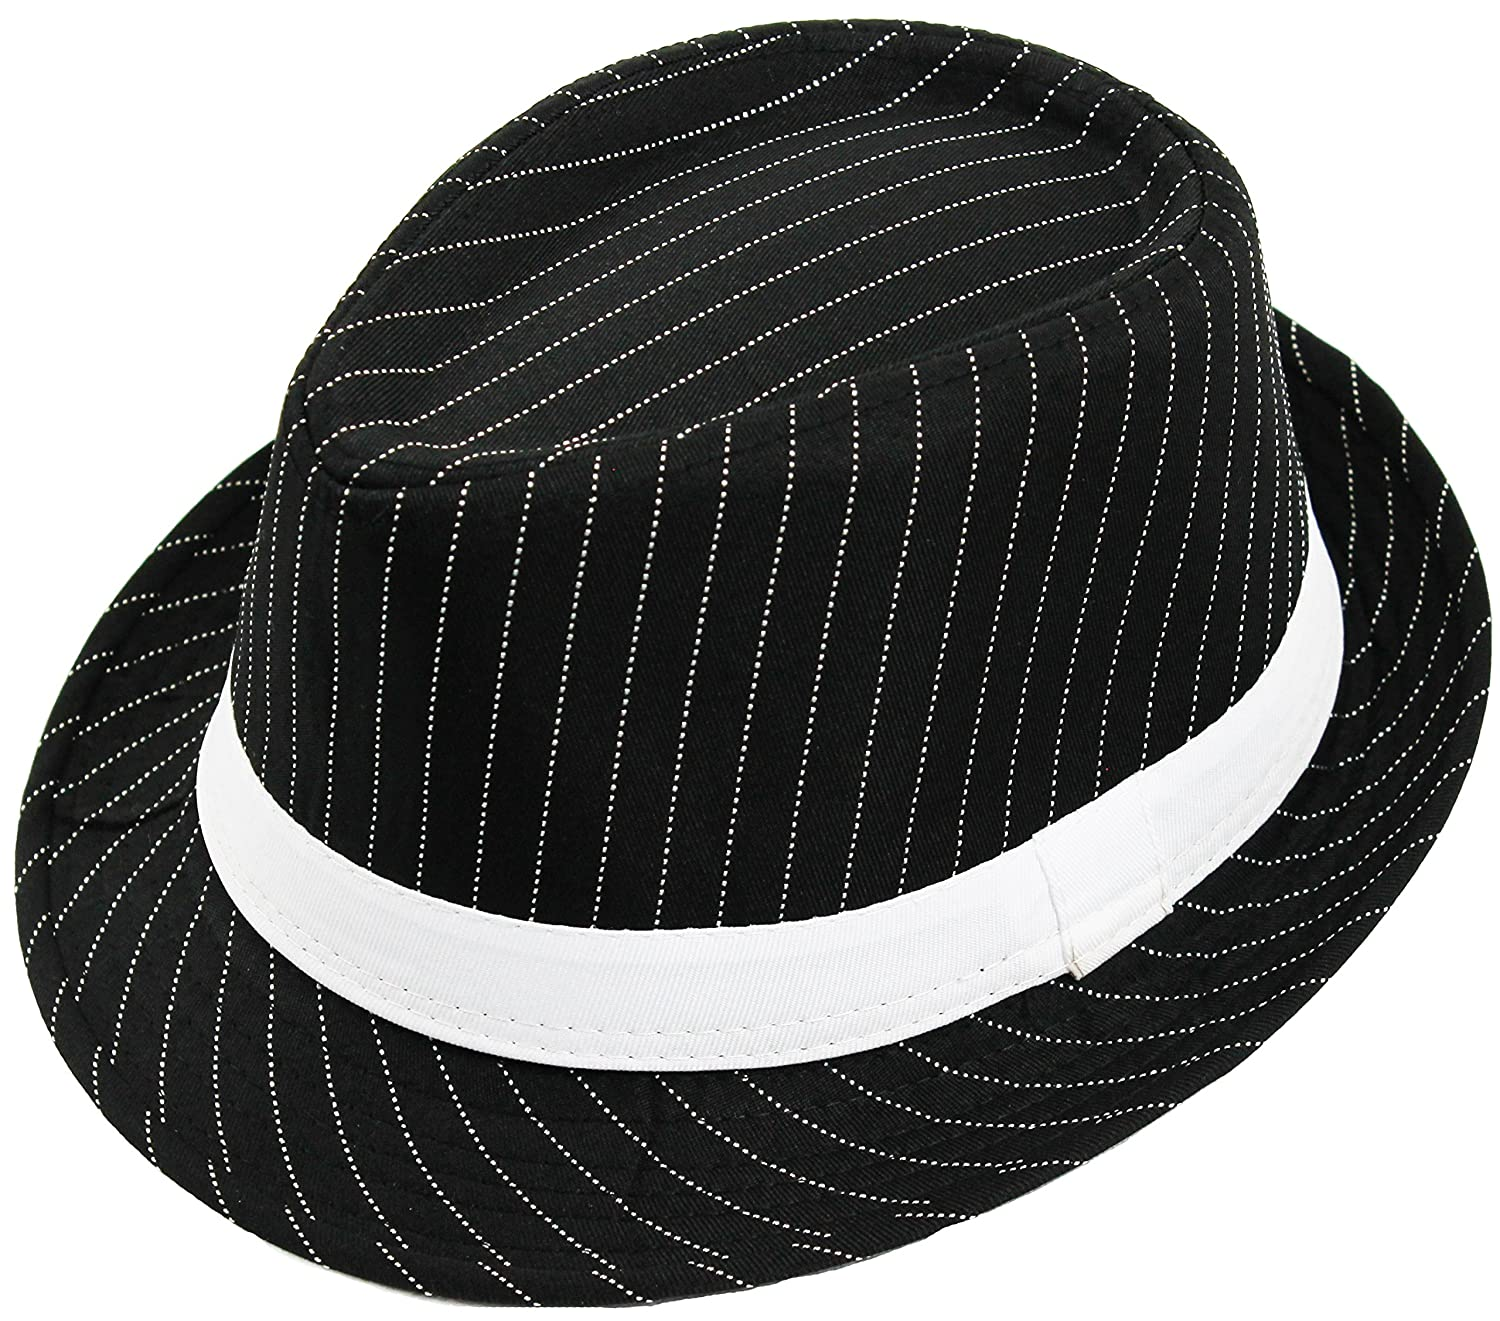 ILOVEFANCYDRESS Men s Deluxe Pinstripe Trilby Hat Stripe   Band Gangster  Style Fedora at Amazon Men s Clothing store  5882c019abde